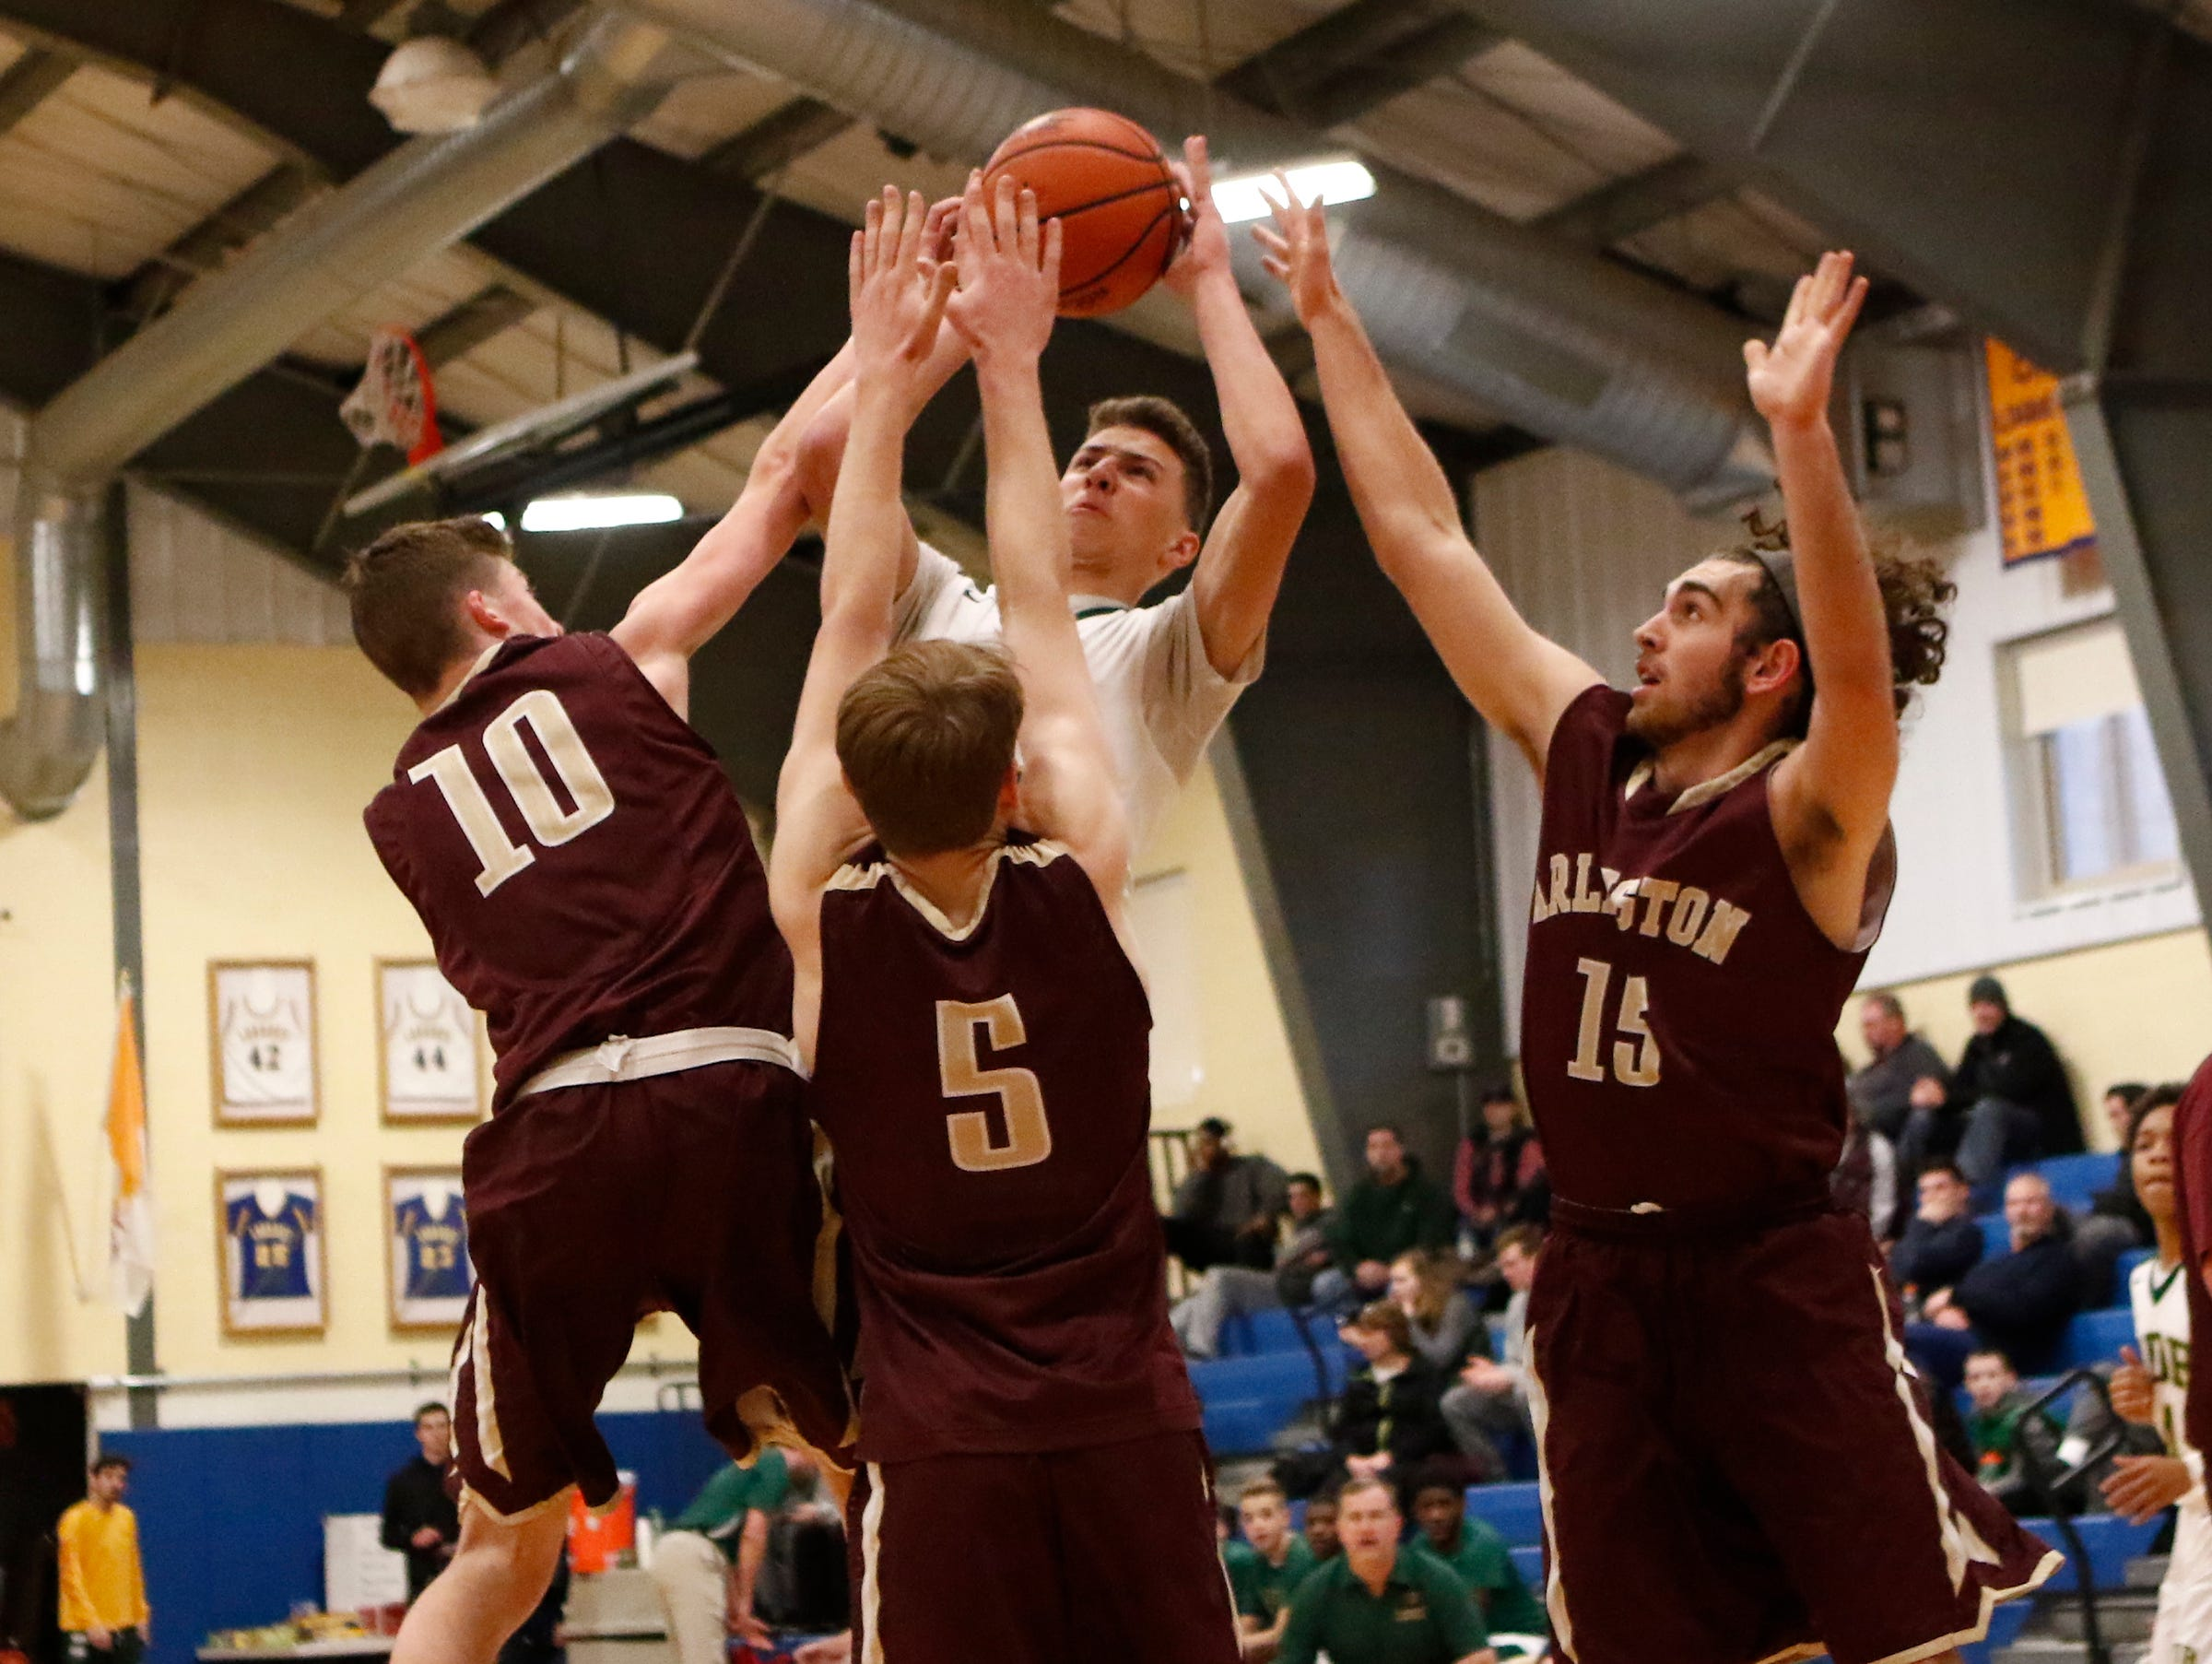 Arlington defenders Dan Duffy, John Smith and Jono Quinn surround a Franklin D. Roosevelt player in the Admirals win in the consolation game of the Duane Davis Memorial Basketball Tournament on Dec. 31, 2016.